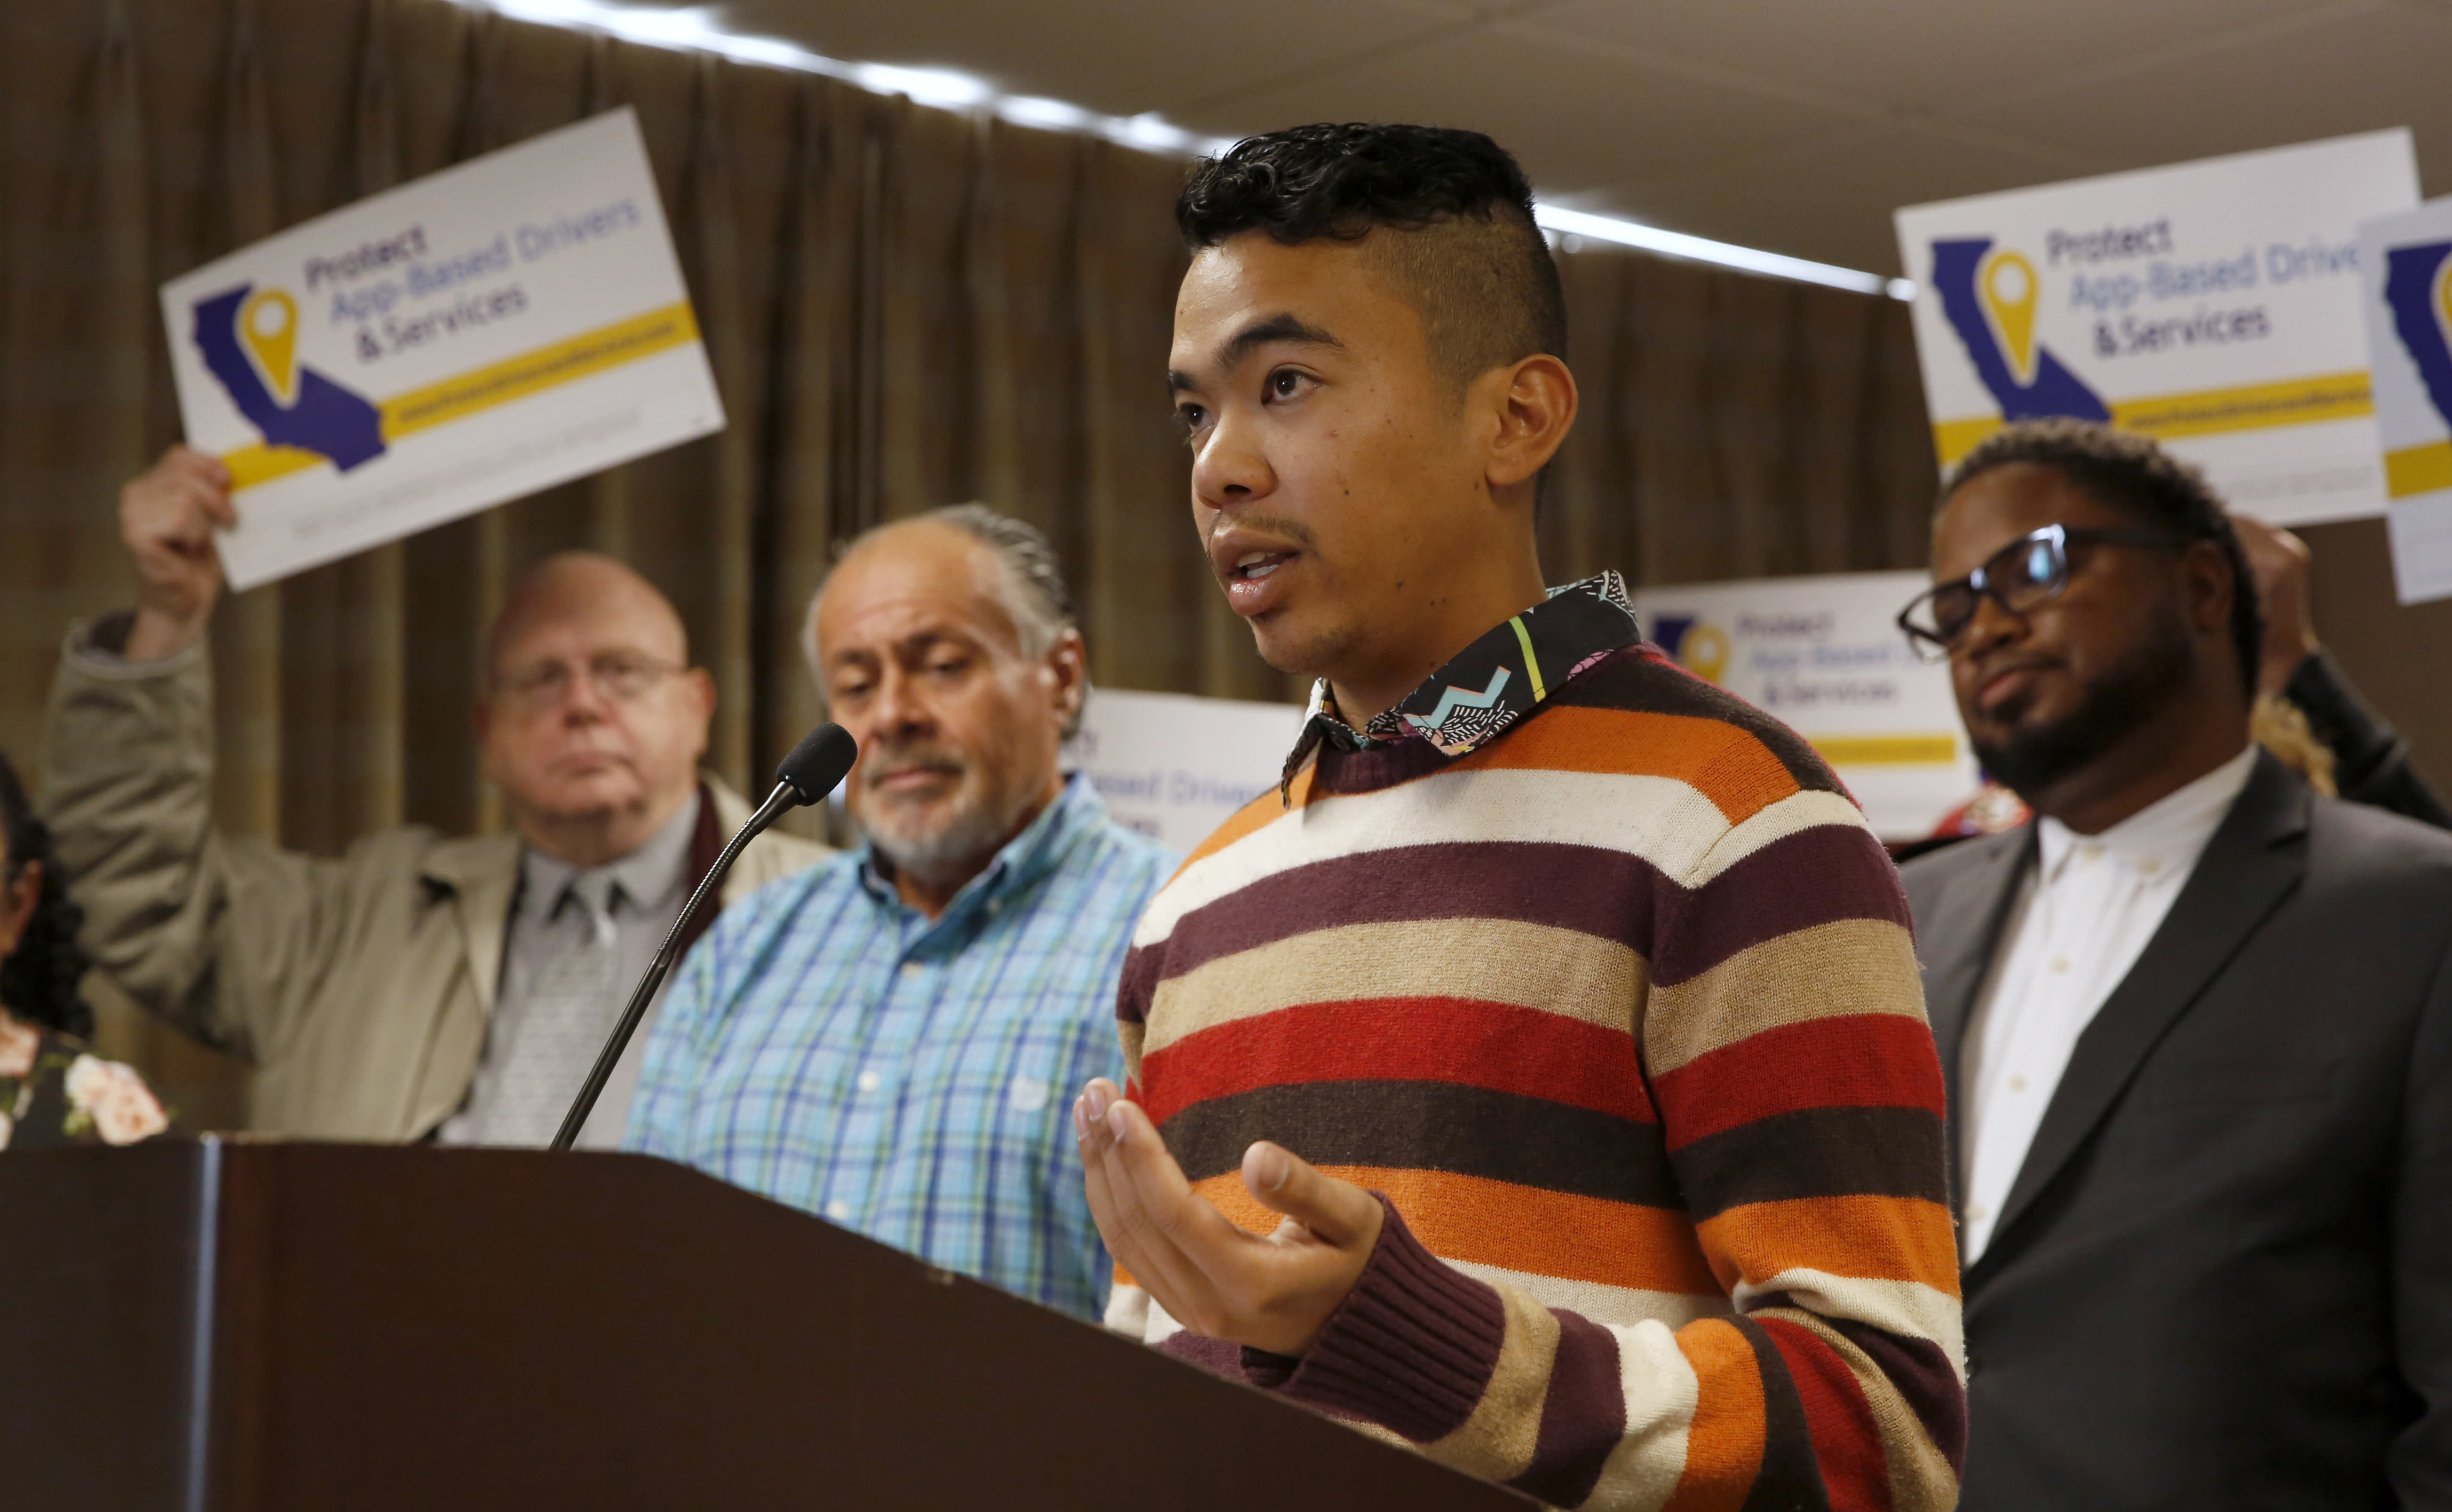 Akamine Kiarie, a college student, says working for Lyft as an independent contractor gives him the freedom to work when he wants and still be able to attend classes, during a news conference in Sacramento, Calif., Tuesday, Oct. 29, 2019. Kiarie supports a proposed ballot initiative by a group called Protect App-Based Drivers and Services that it will push a ballot initiative challenging a recently signed law that makes it harder for companies to label workers as independent contractors. If approved by voters the initiative would guarantee that drivers remain independent contractors but also receive a minimum wage and money for health insurance. (AP Photo/Rich Pedroncelli)